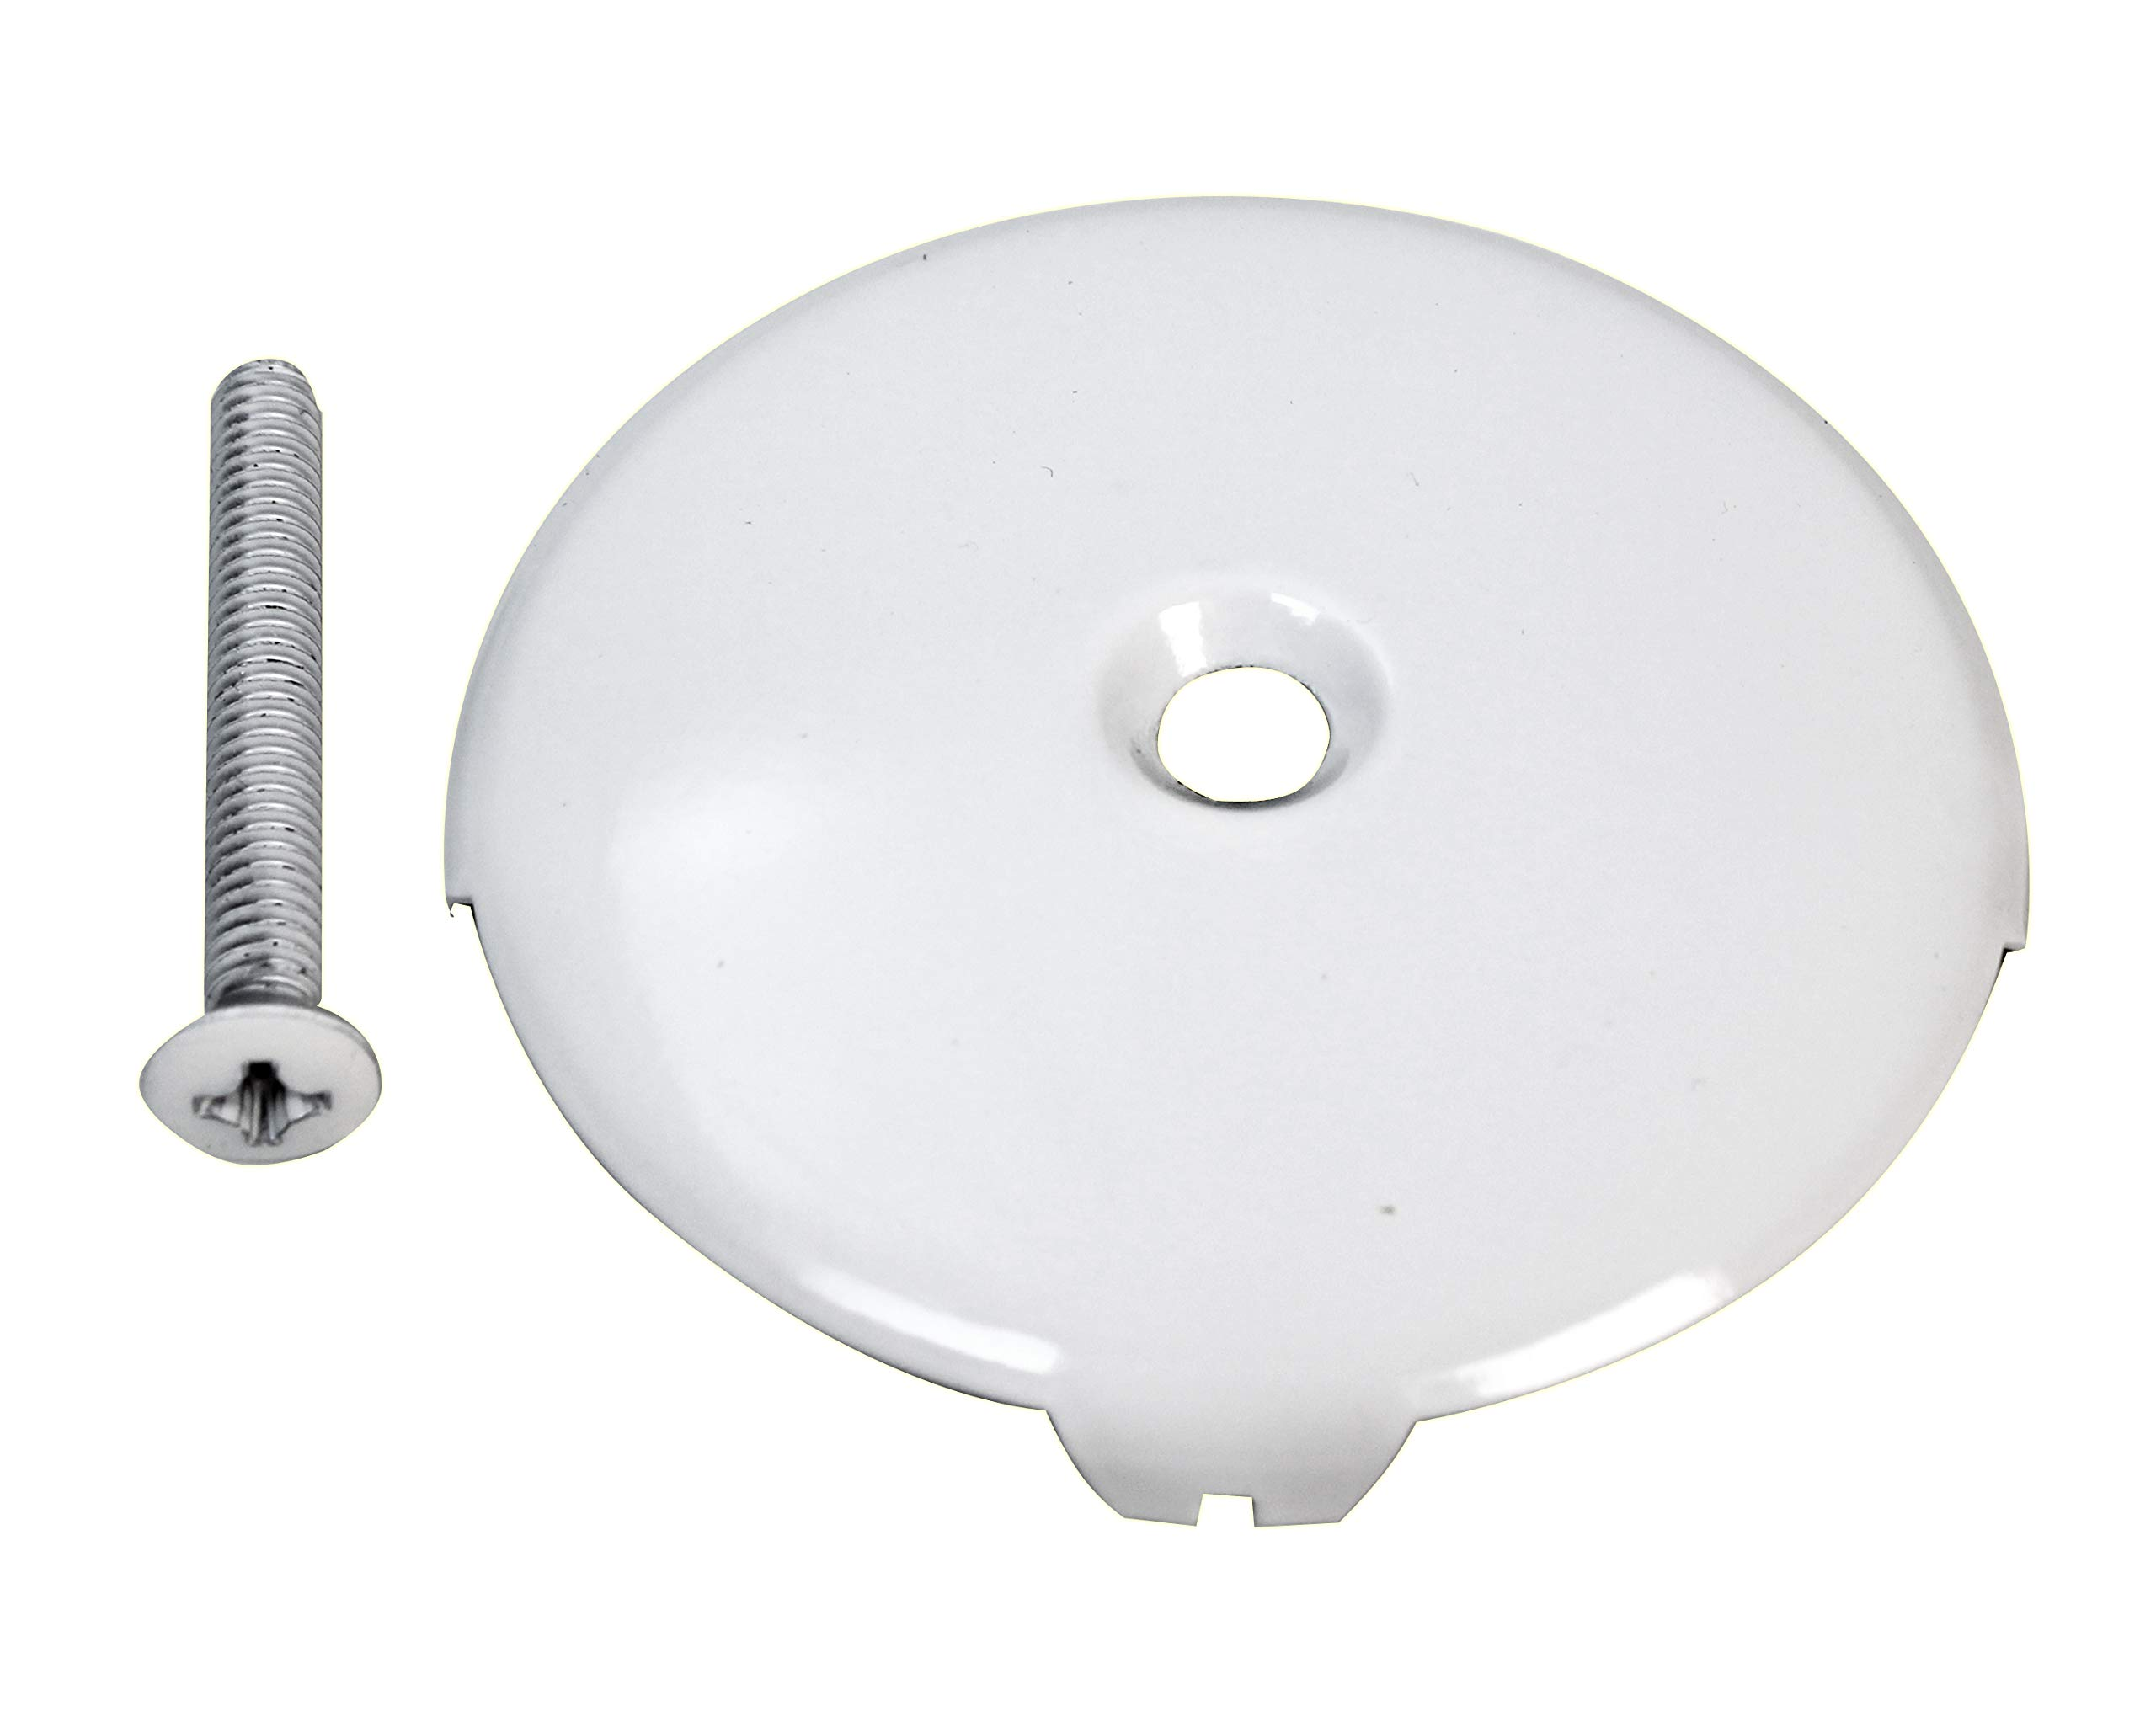 Westbrass D328-50 One Hole Tub Overflow Faceplate with Screw, Powder Coat White